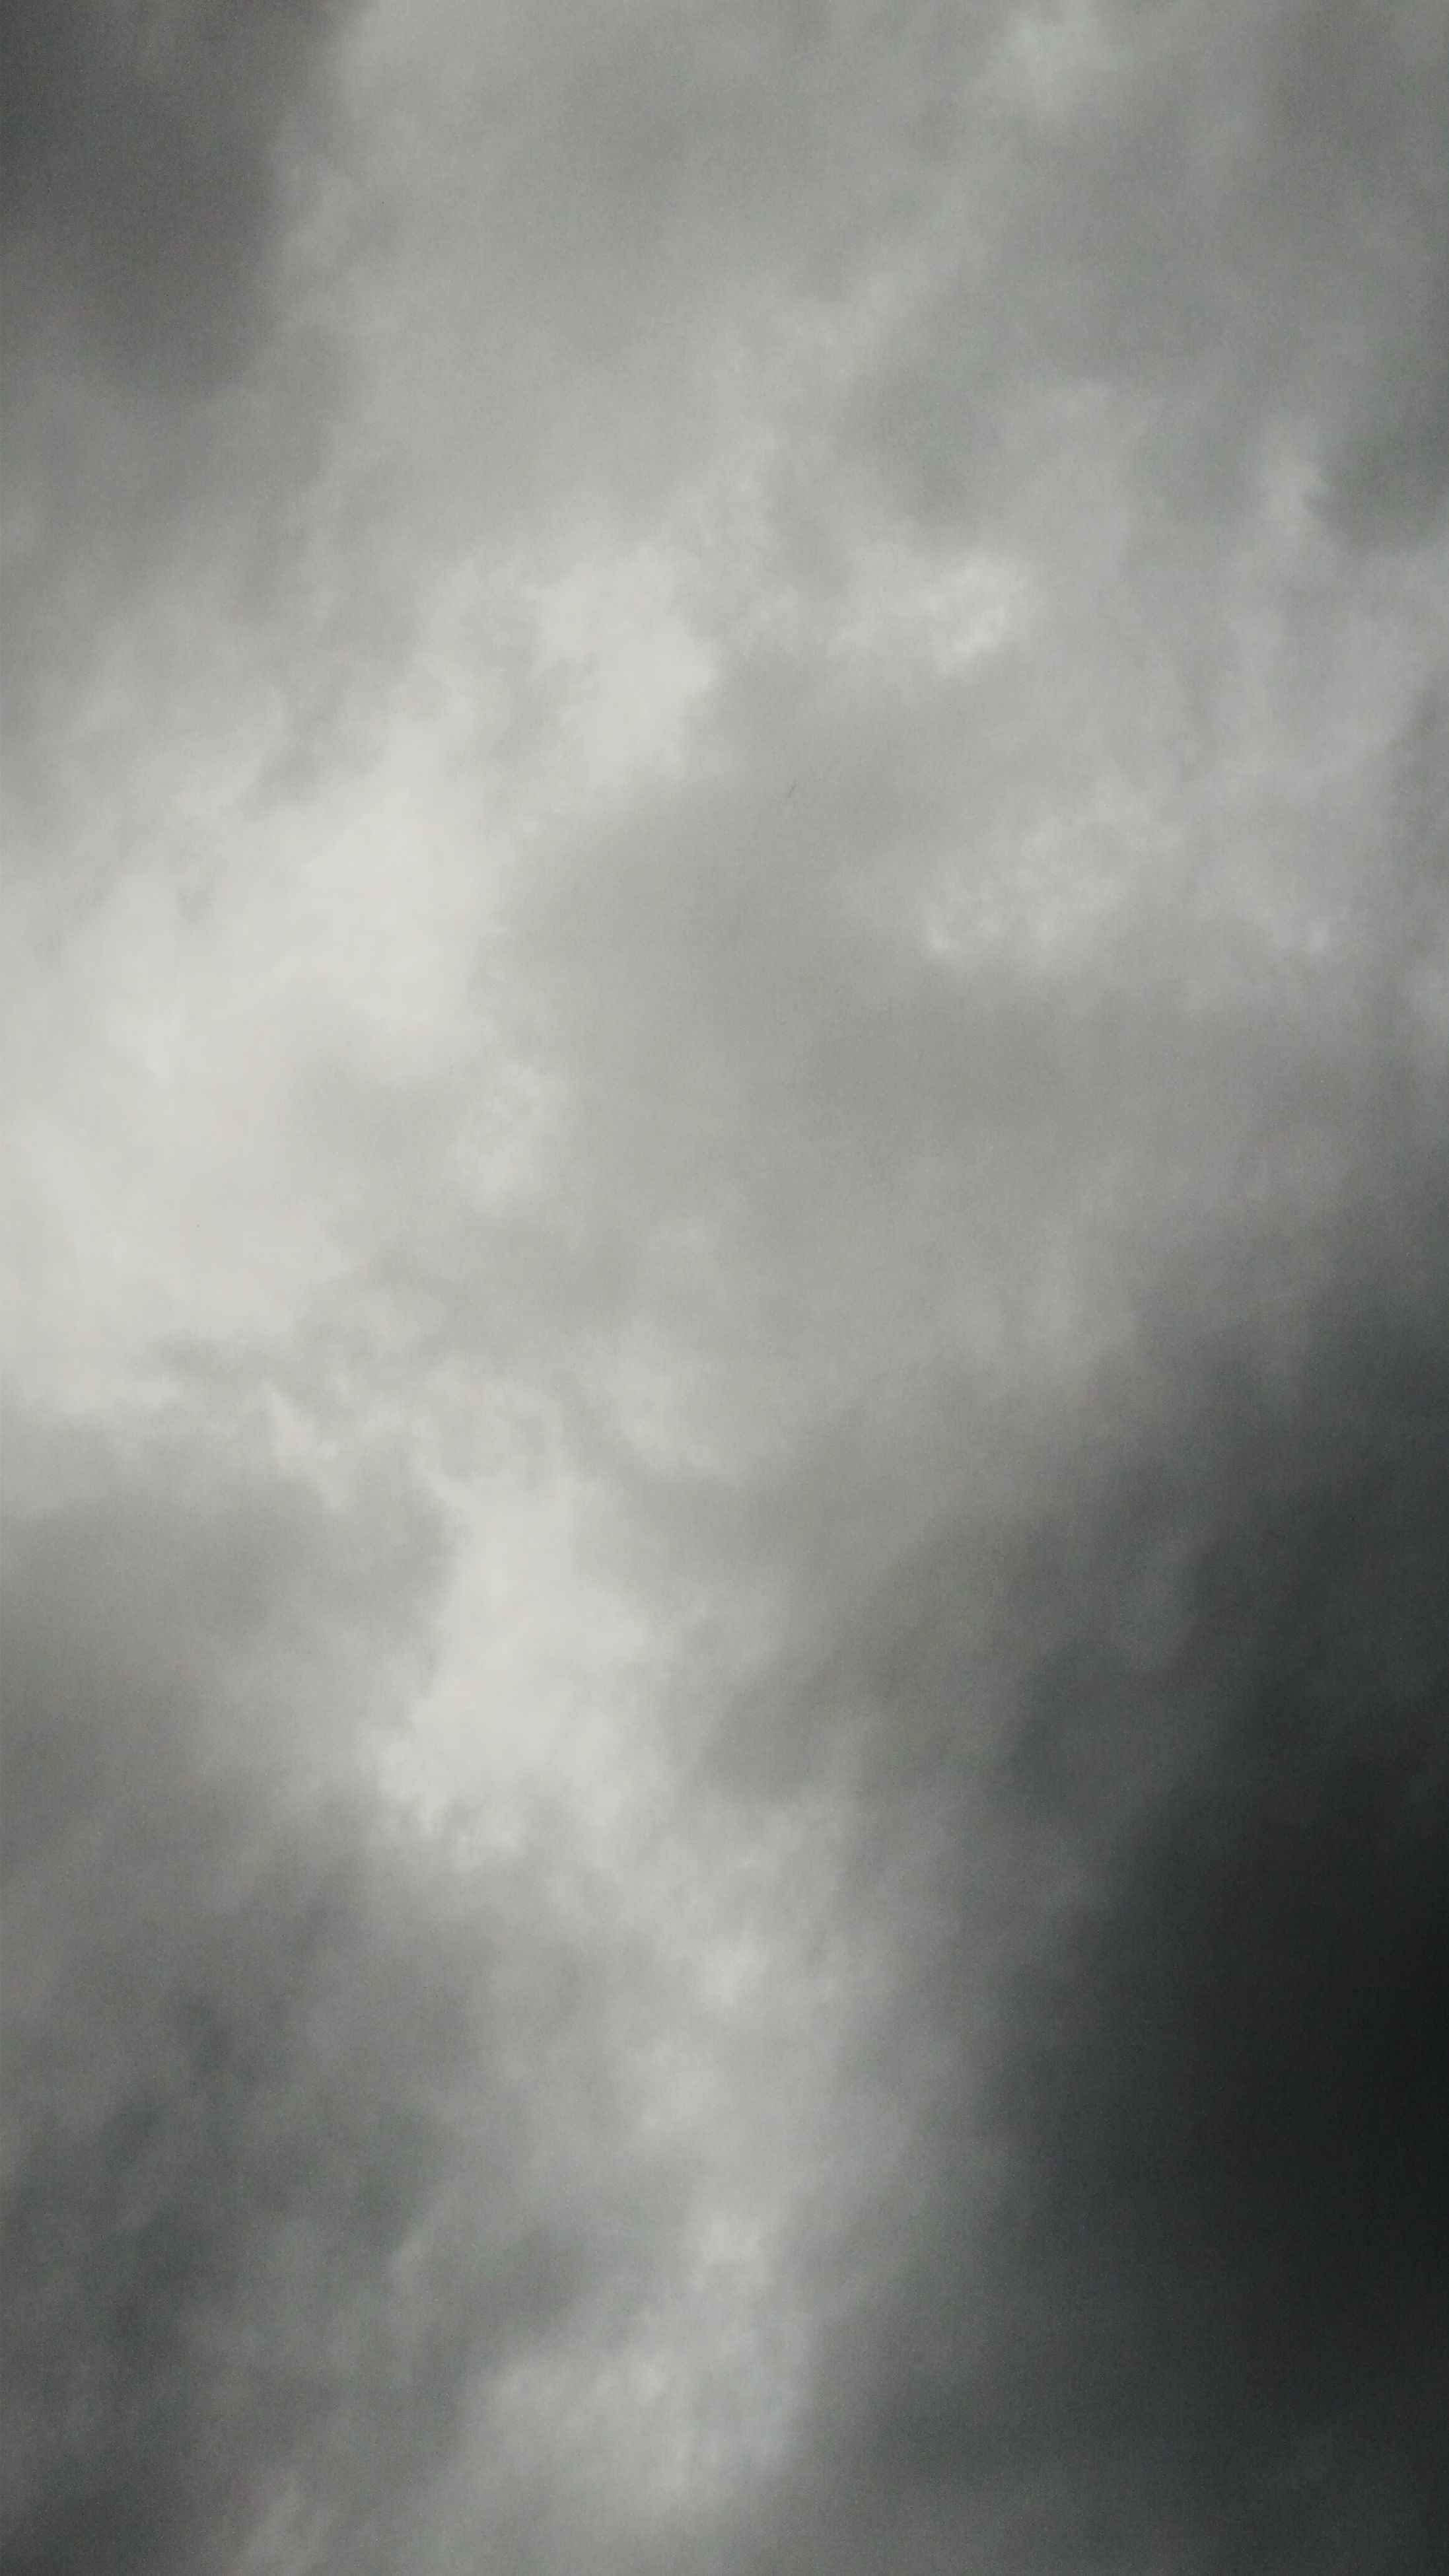 sky, cloud - sky, cloudy, low angle view, beauty in nature, weather, tranquility, cloudscape, sky only, backgrounds, nature, scenics, full frame, overcast, tranquil scene, cloud, idyllic, outdoors, no people, day